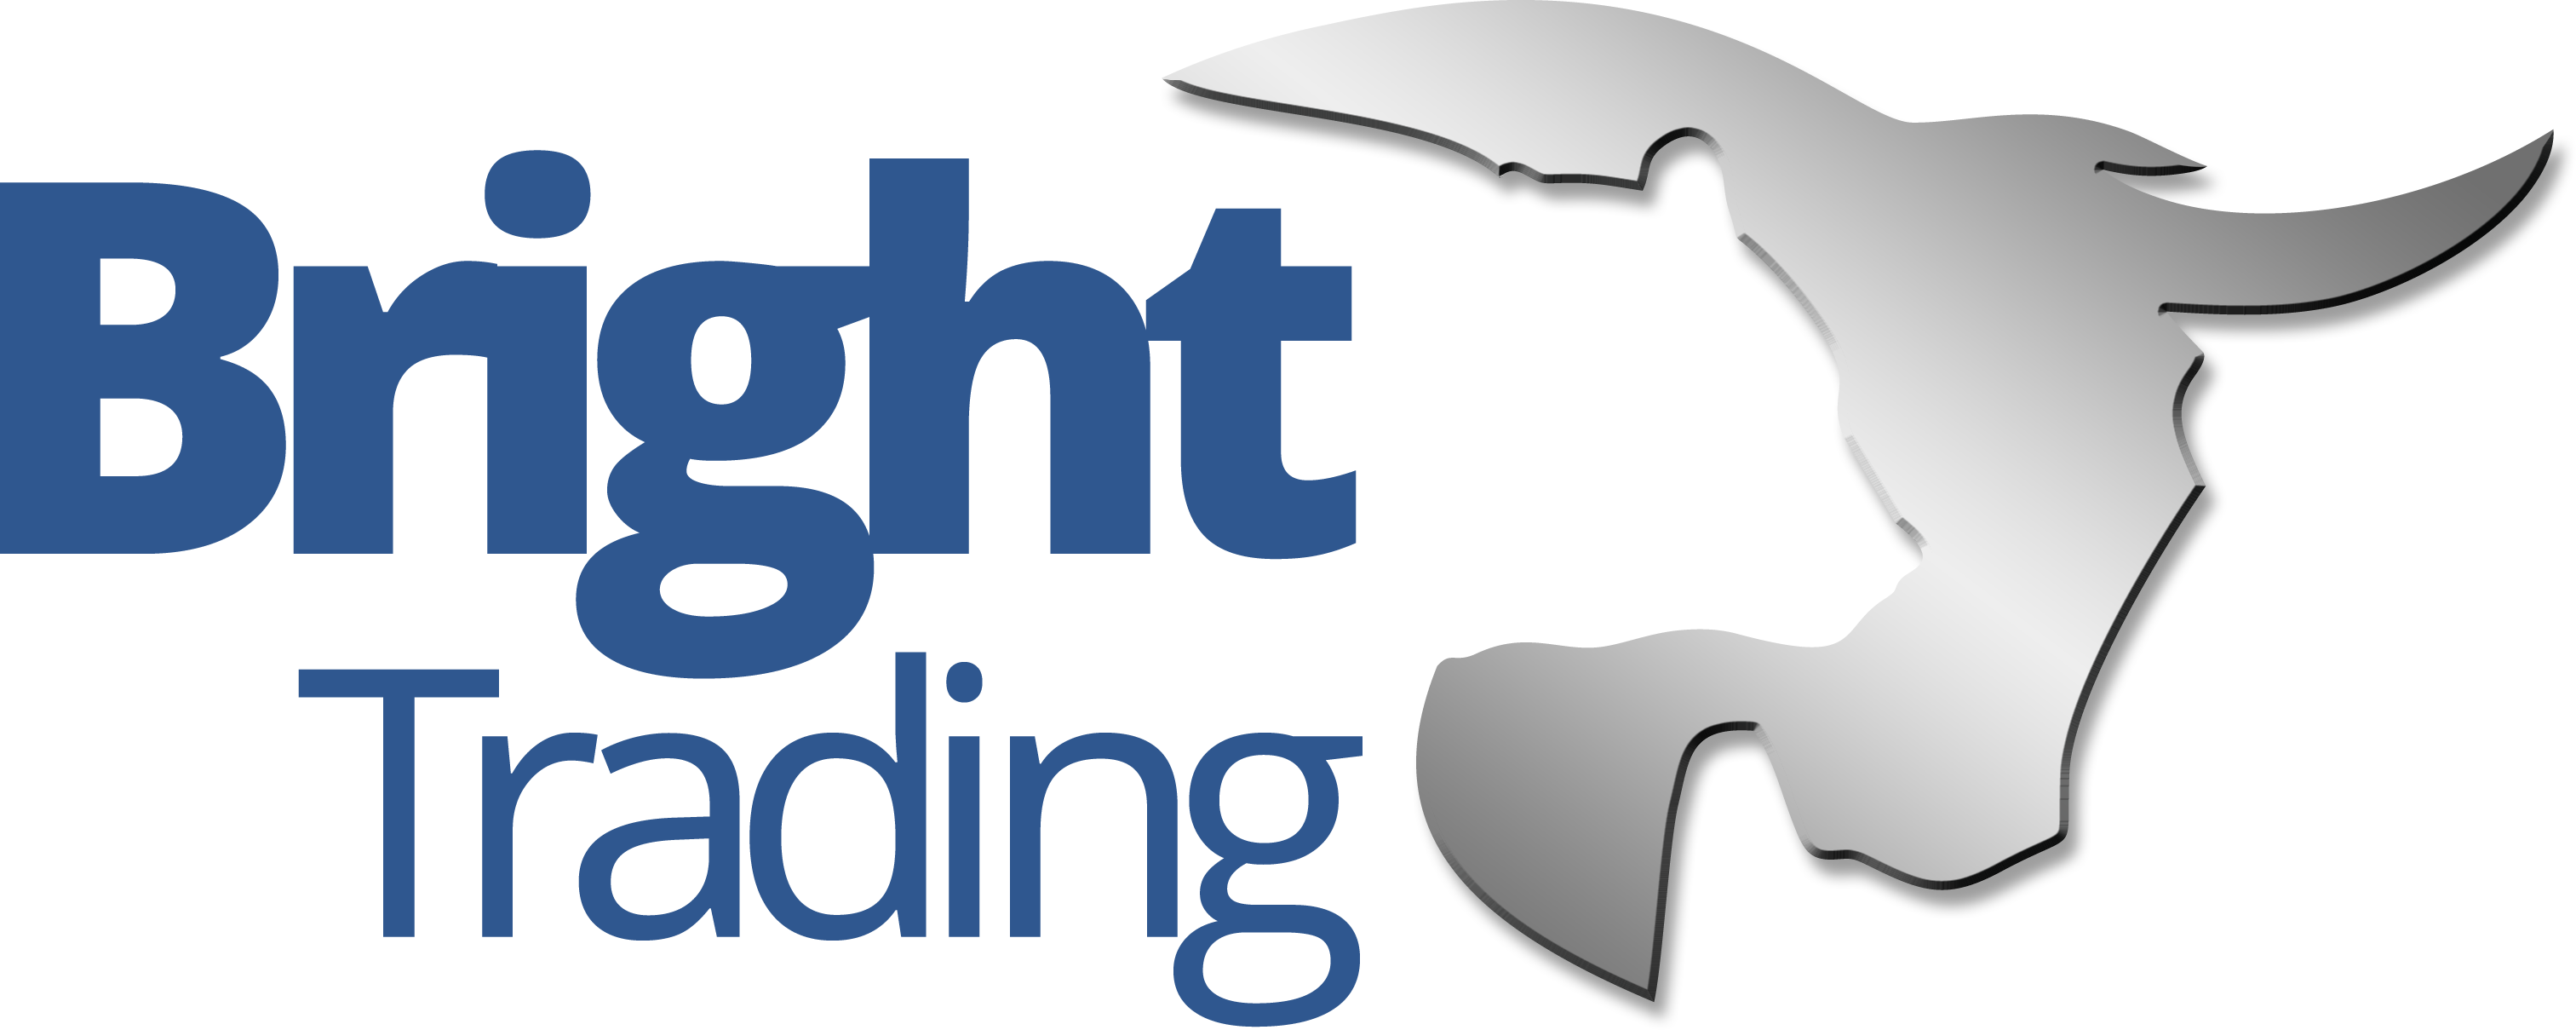 Bright trading celebrates years. Finance clipart business news